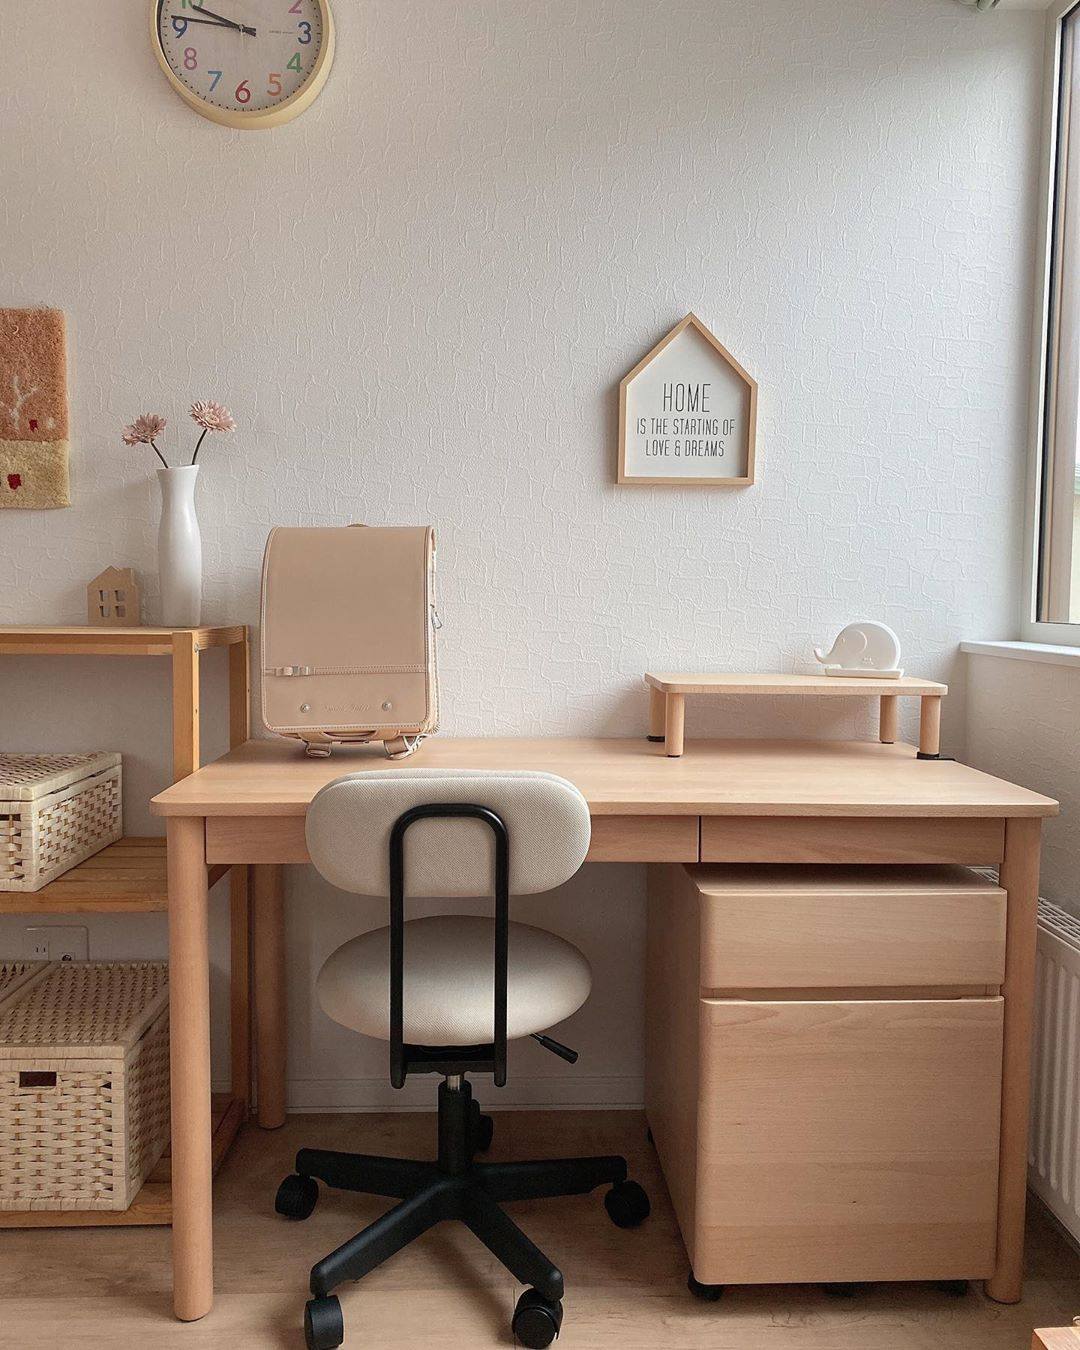 japanese home decor - light wood and beige theme